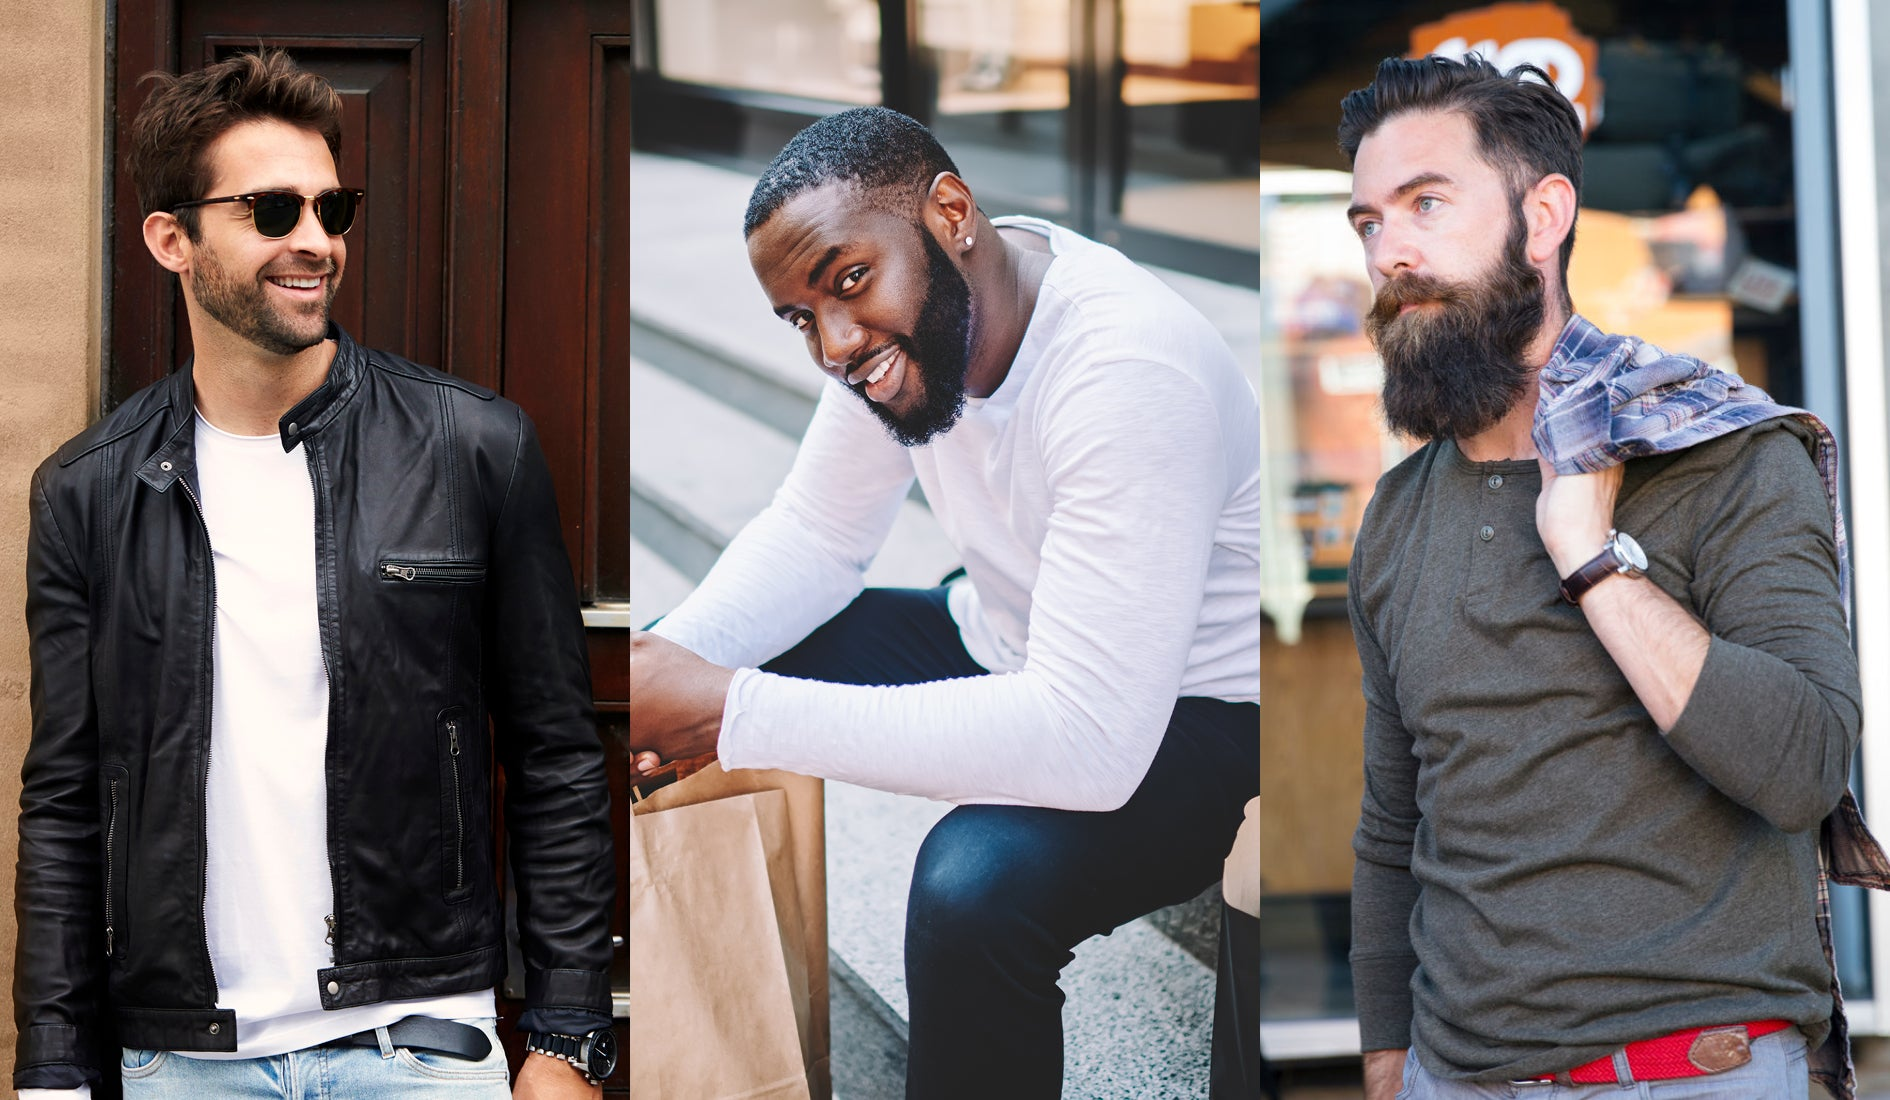 different beard lengths and sizes